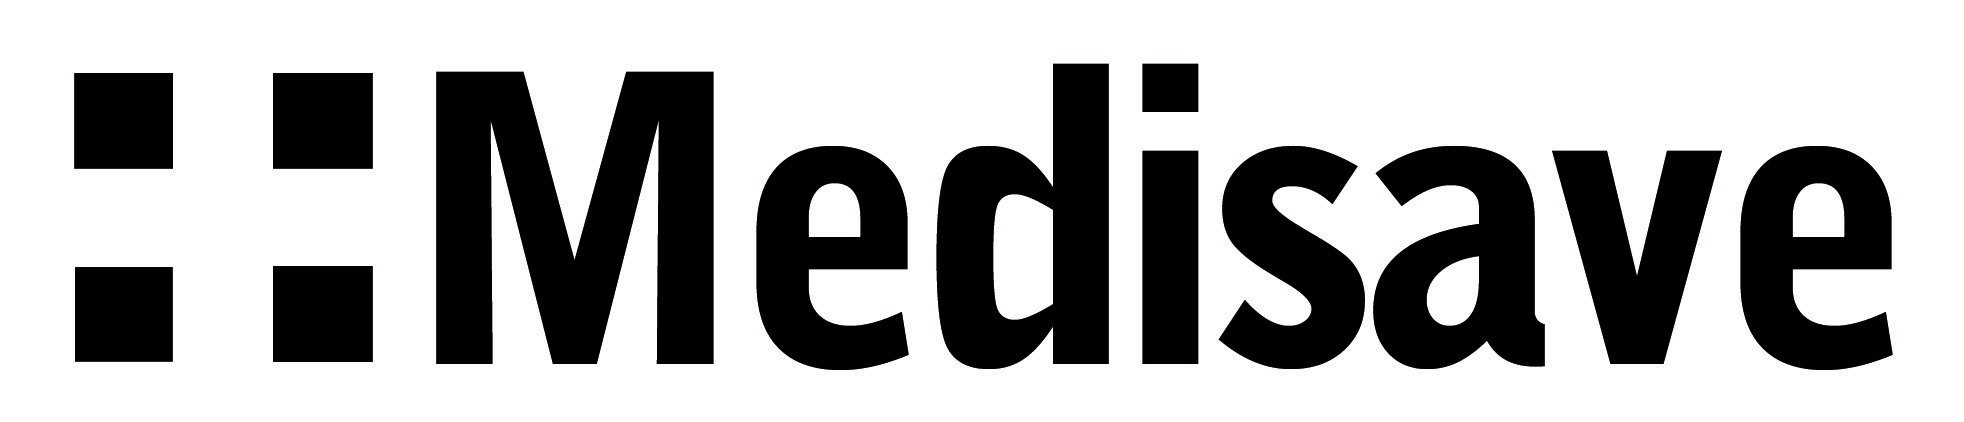 The logo of the item's feed.